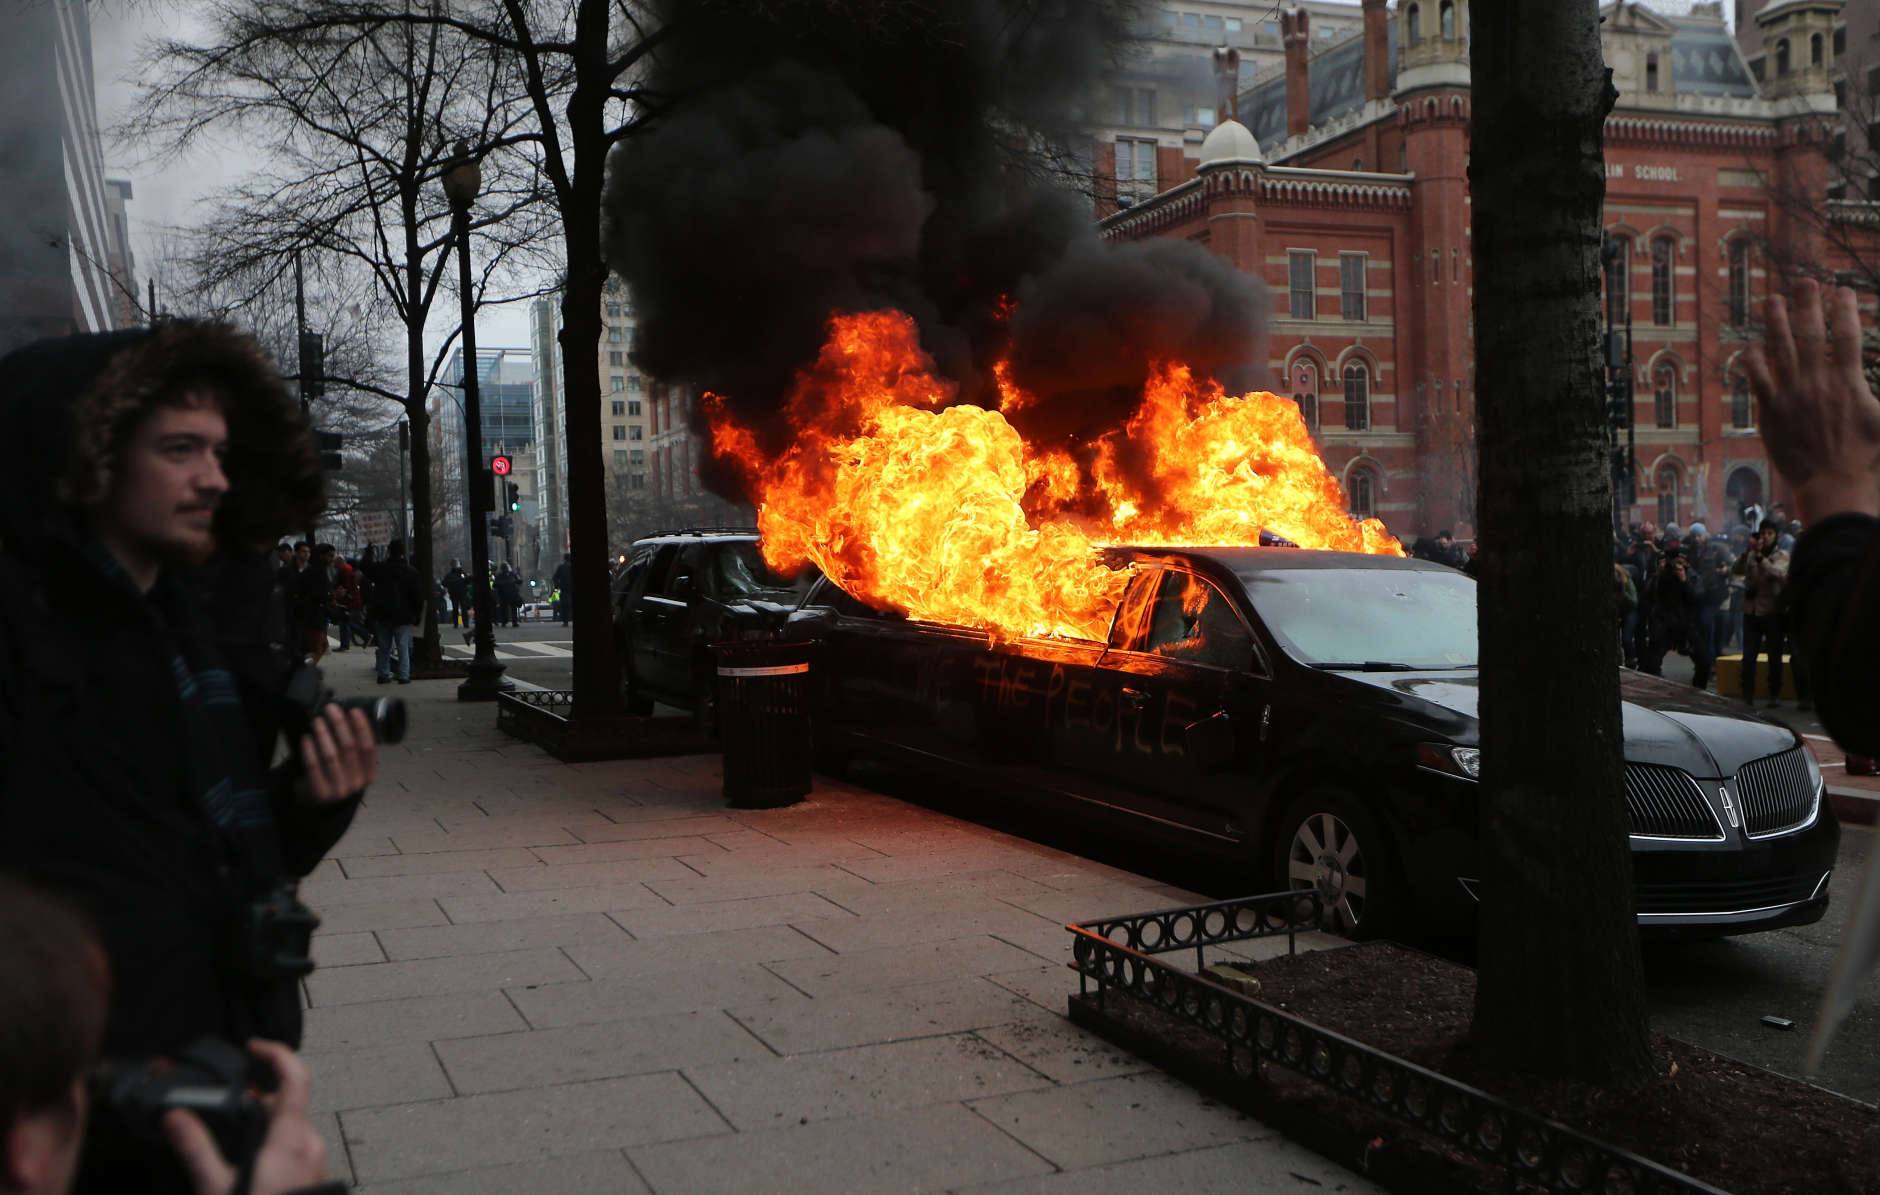 WASHINGTON, DC - JANUARY 20:  A limousine burns after being destroyed by anti-Trump protesters on K Street on January 20, 2017 in Washington, DC. While protests were mostly peaceful, some turned violent. President-elect Donald Trump was sworn-in as the 45th U.S. President today.  (Photo by Mario Tama/Getty Images)